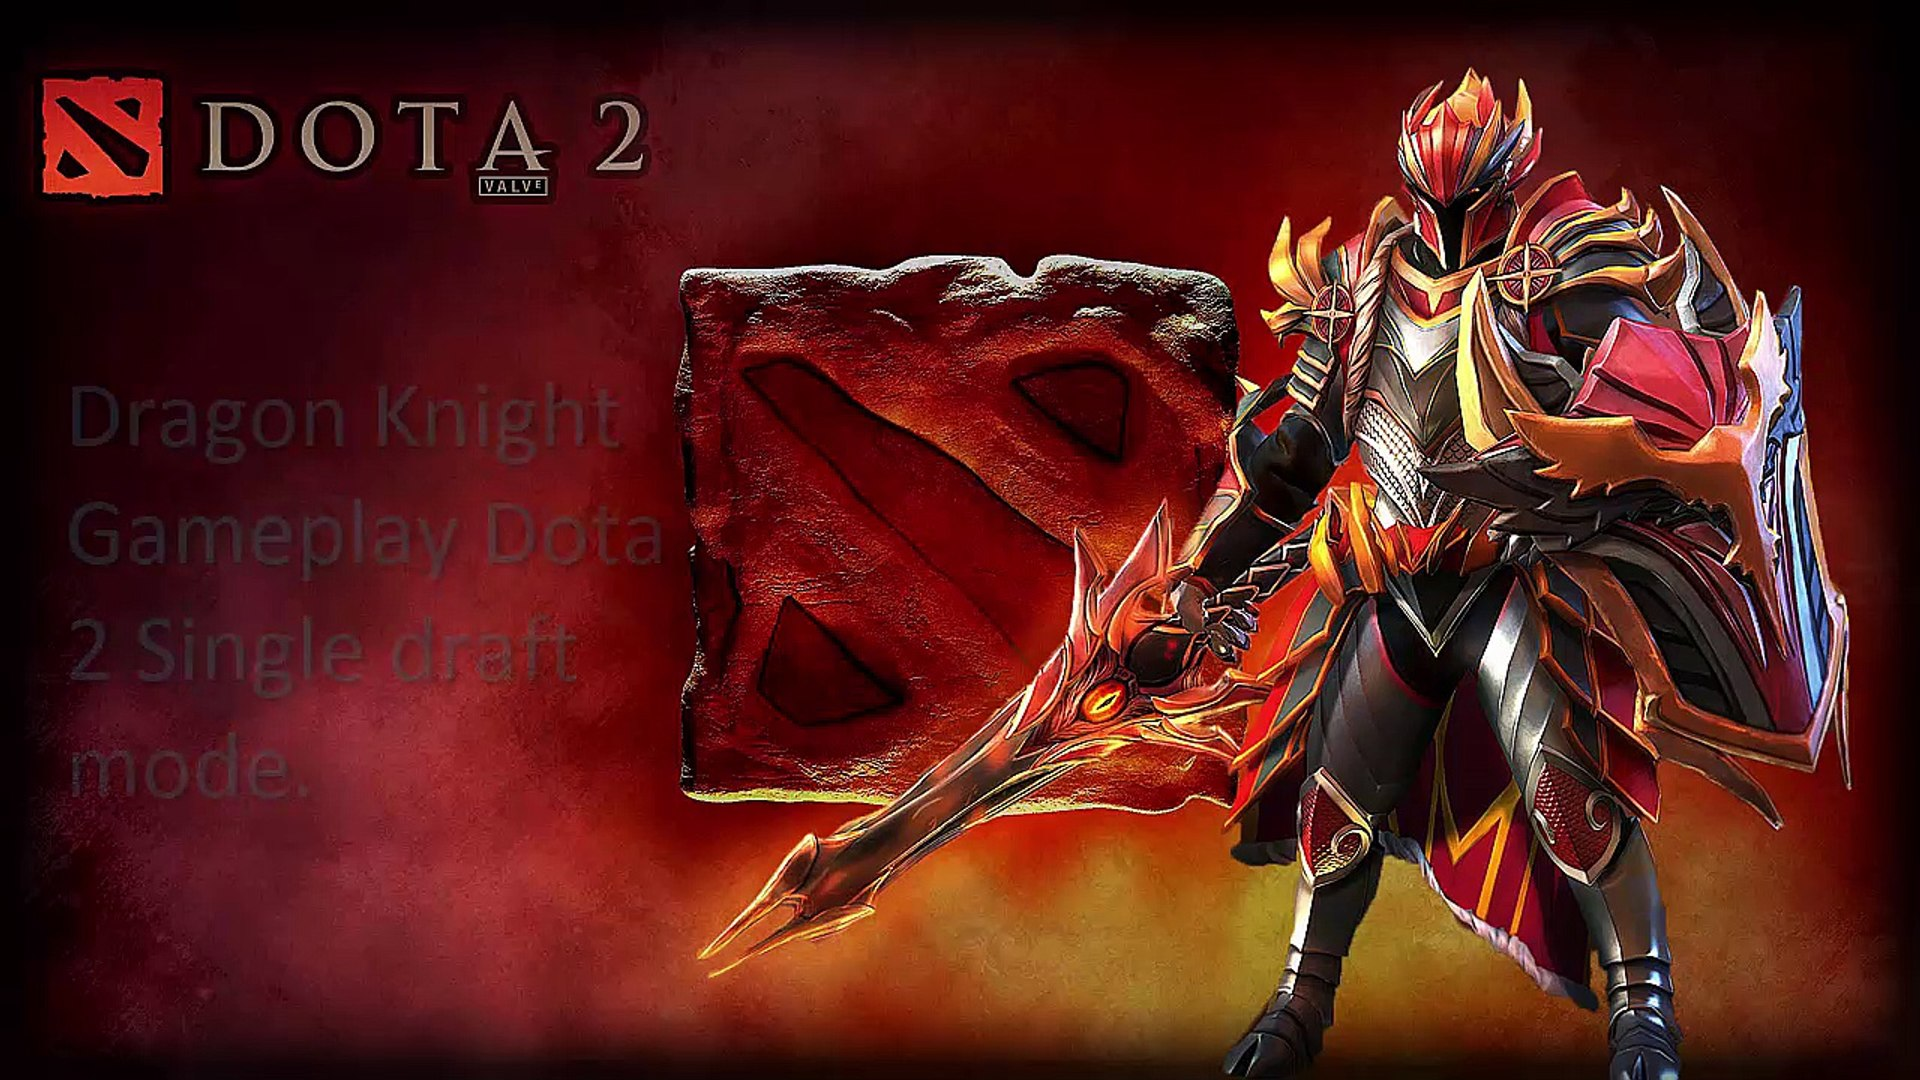 Dota 2 - Dragon knight Dota 2 Game play Single Draft mode